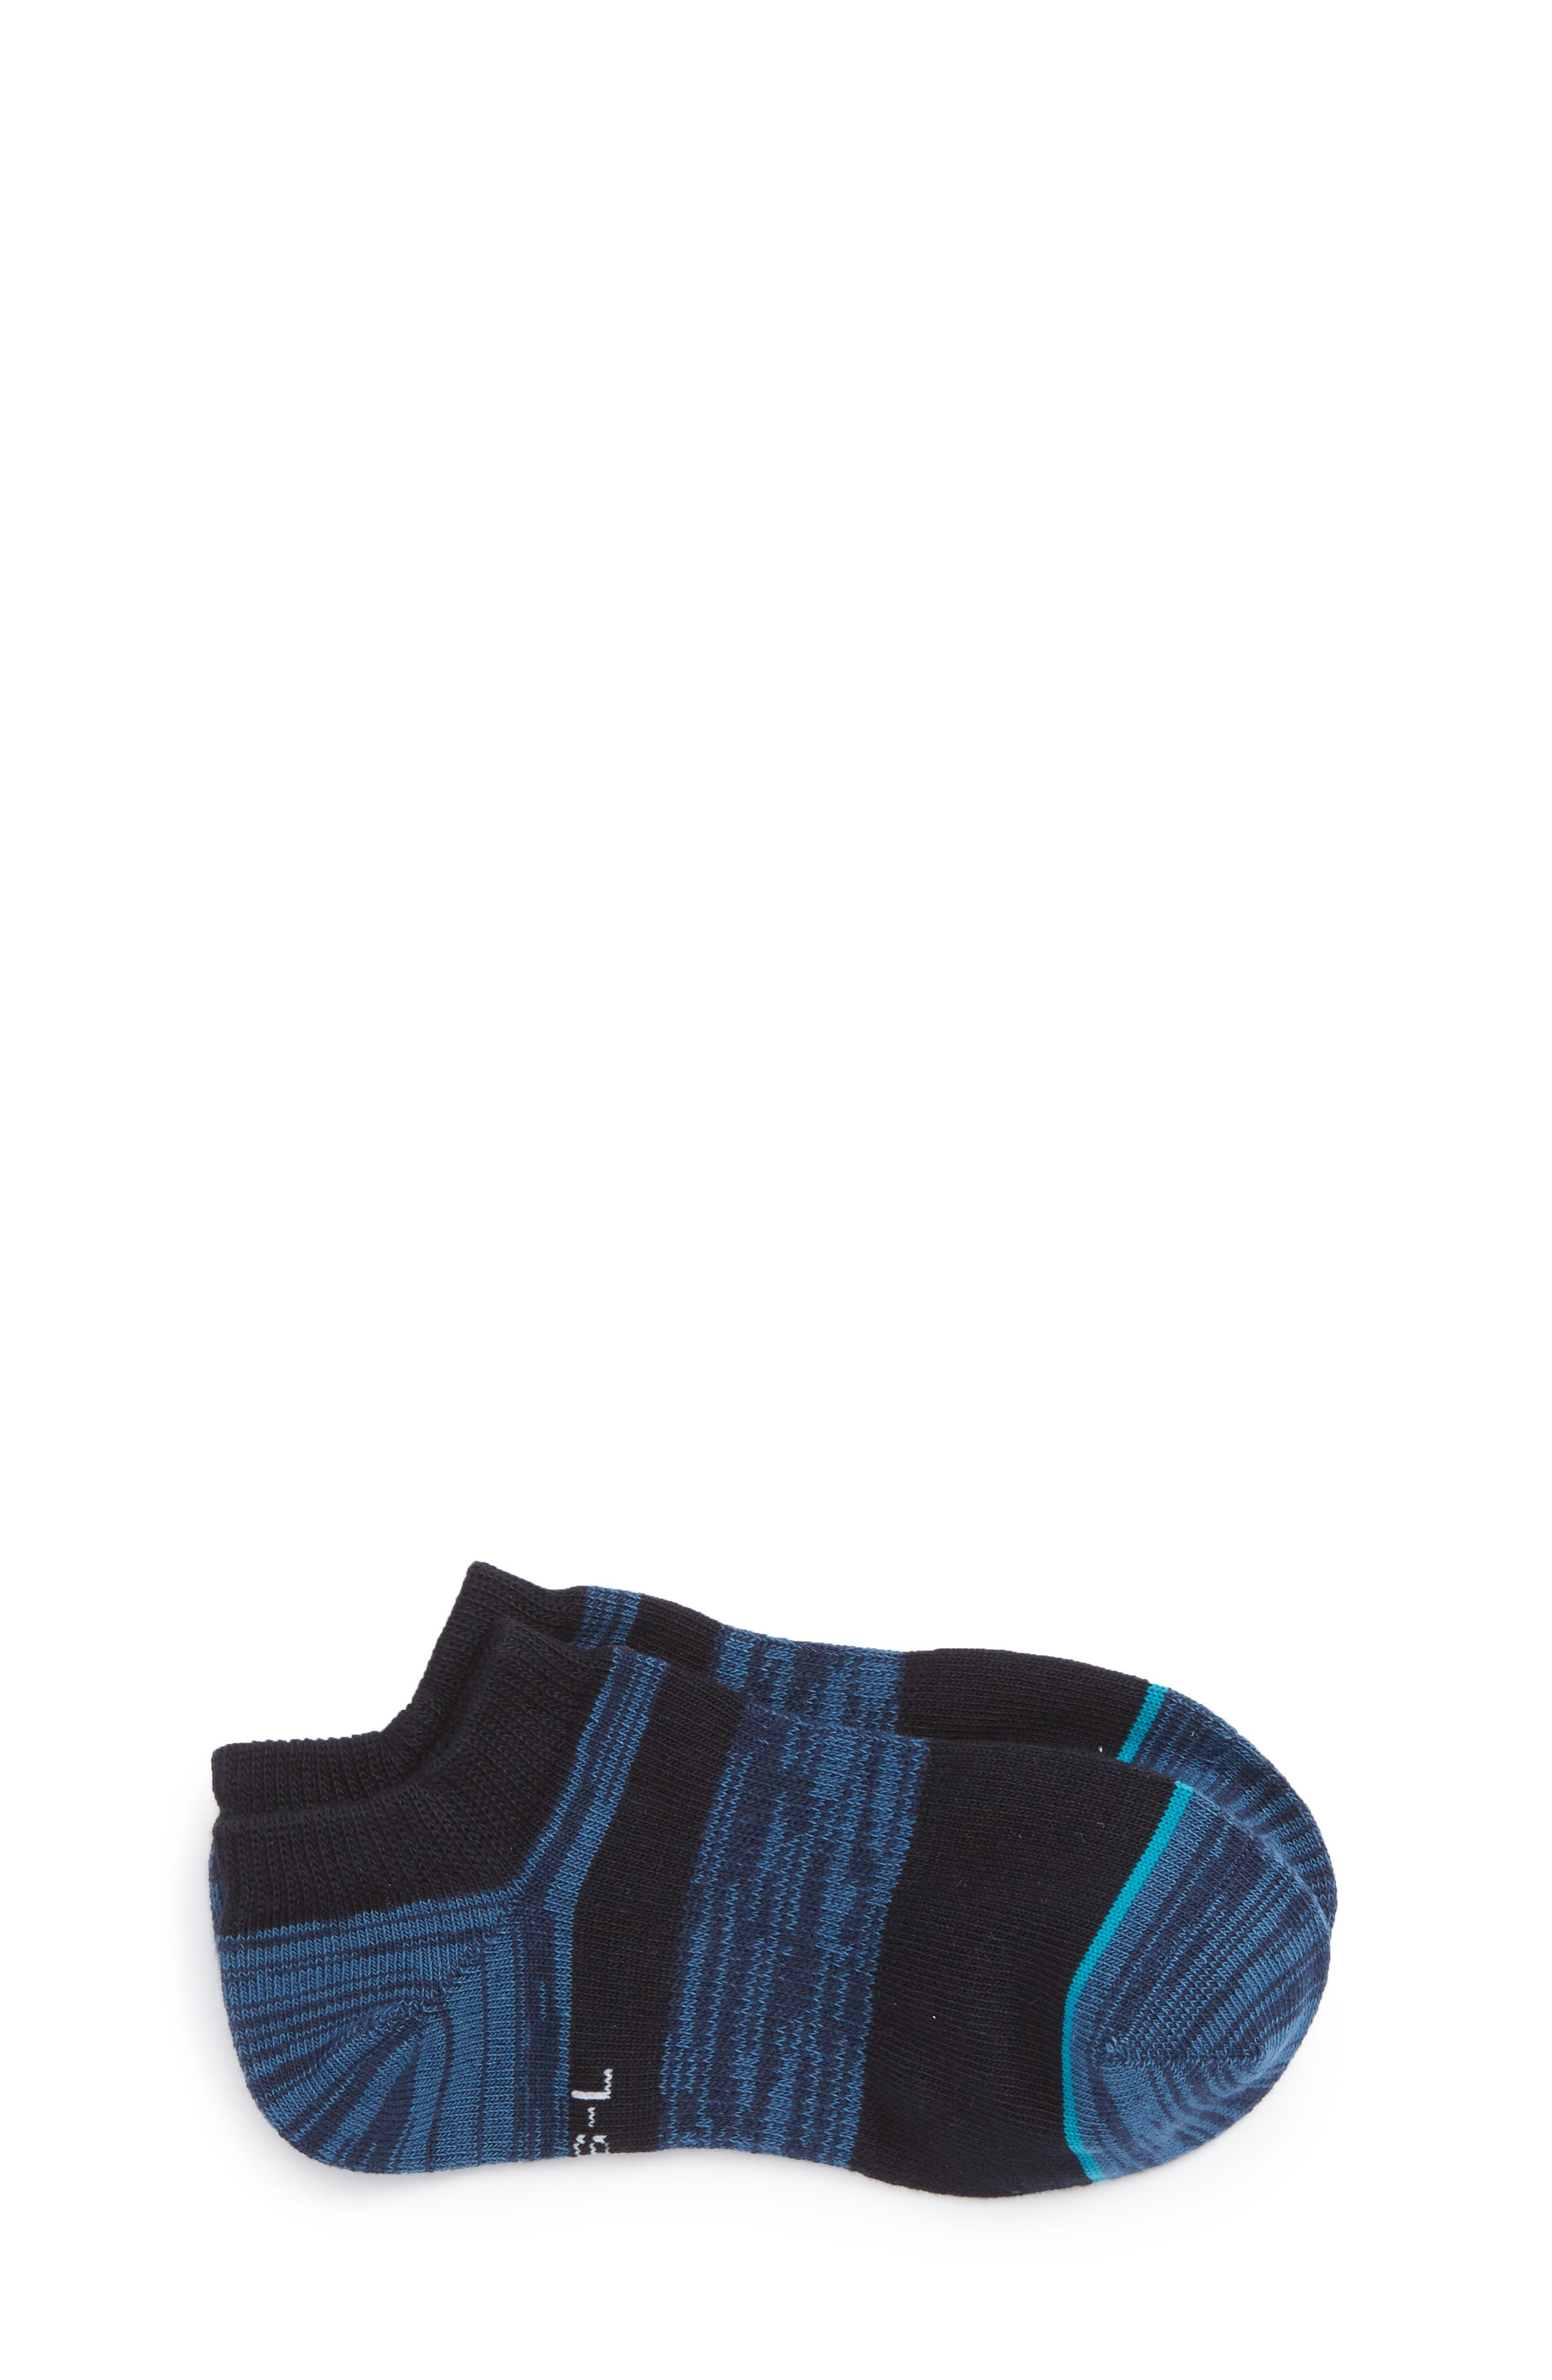 Alternate Image 1 Selected - Stance Domain Striped No-Show Socks (Little Kid)